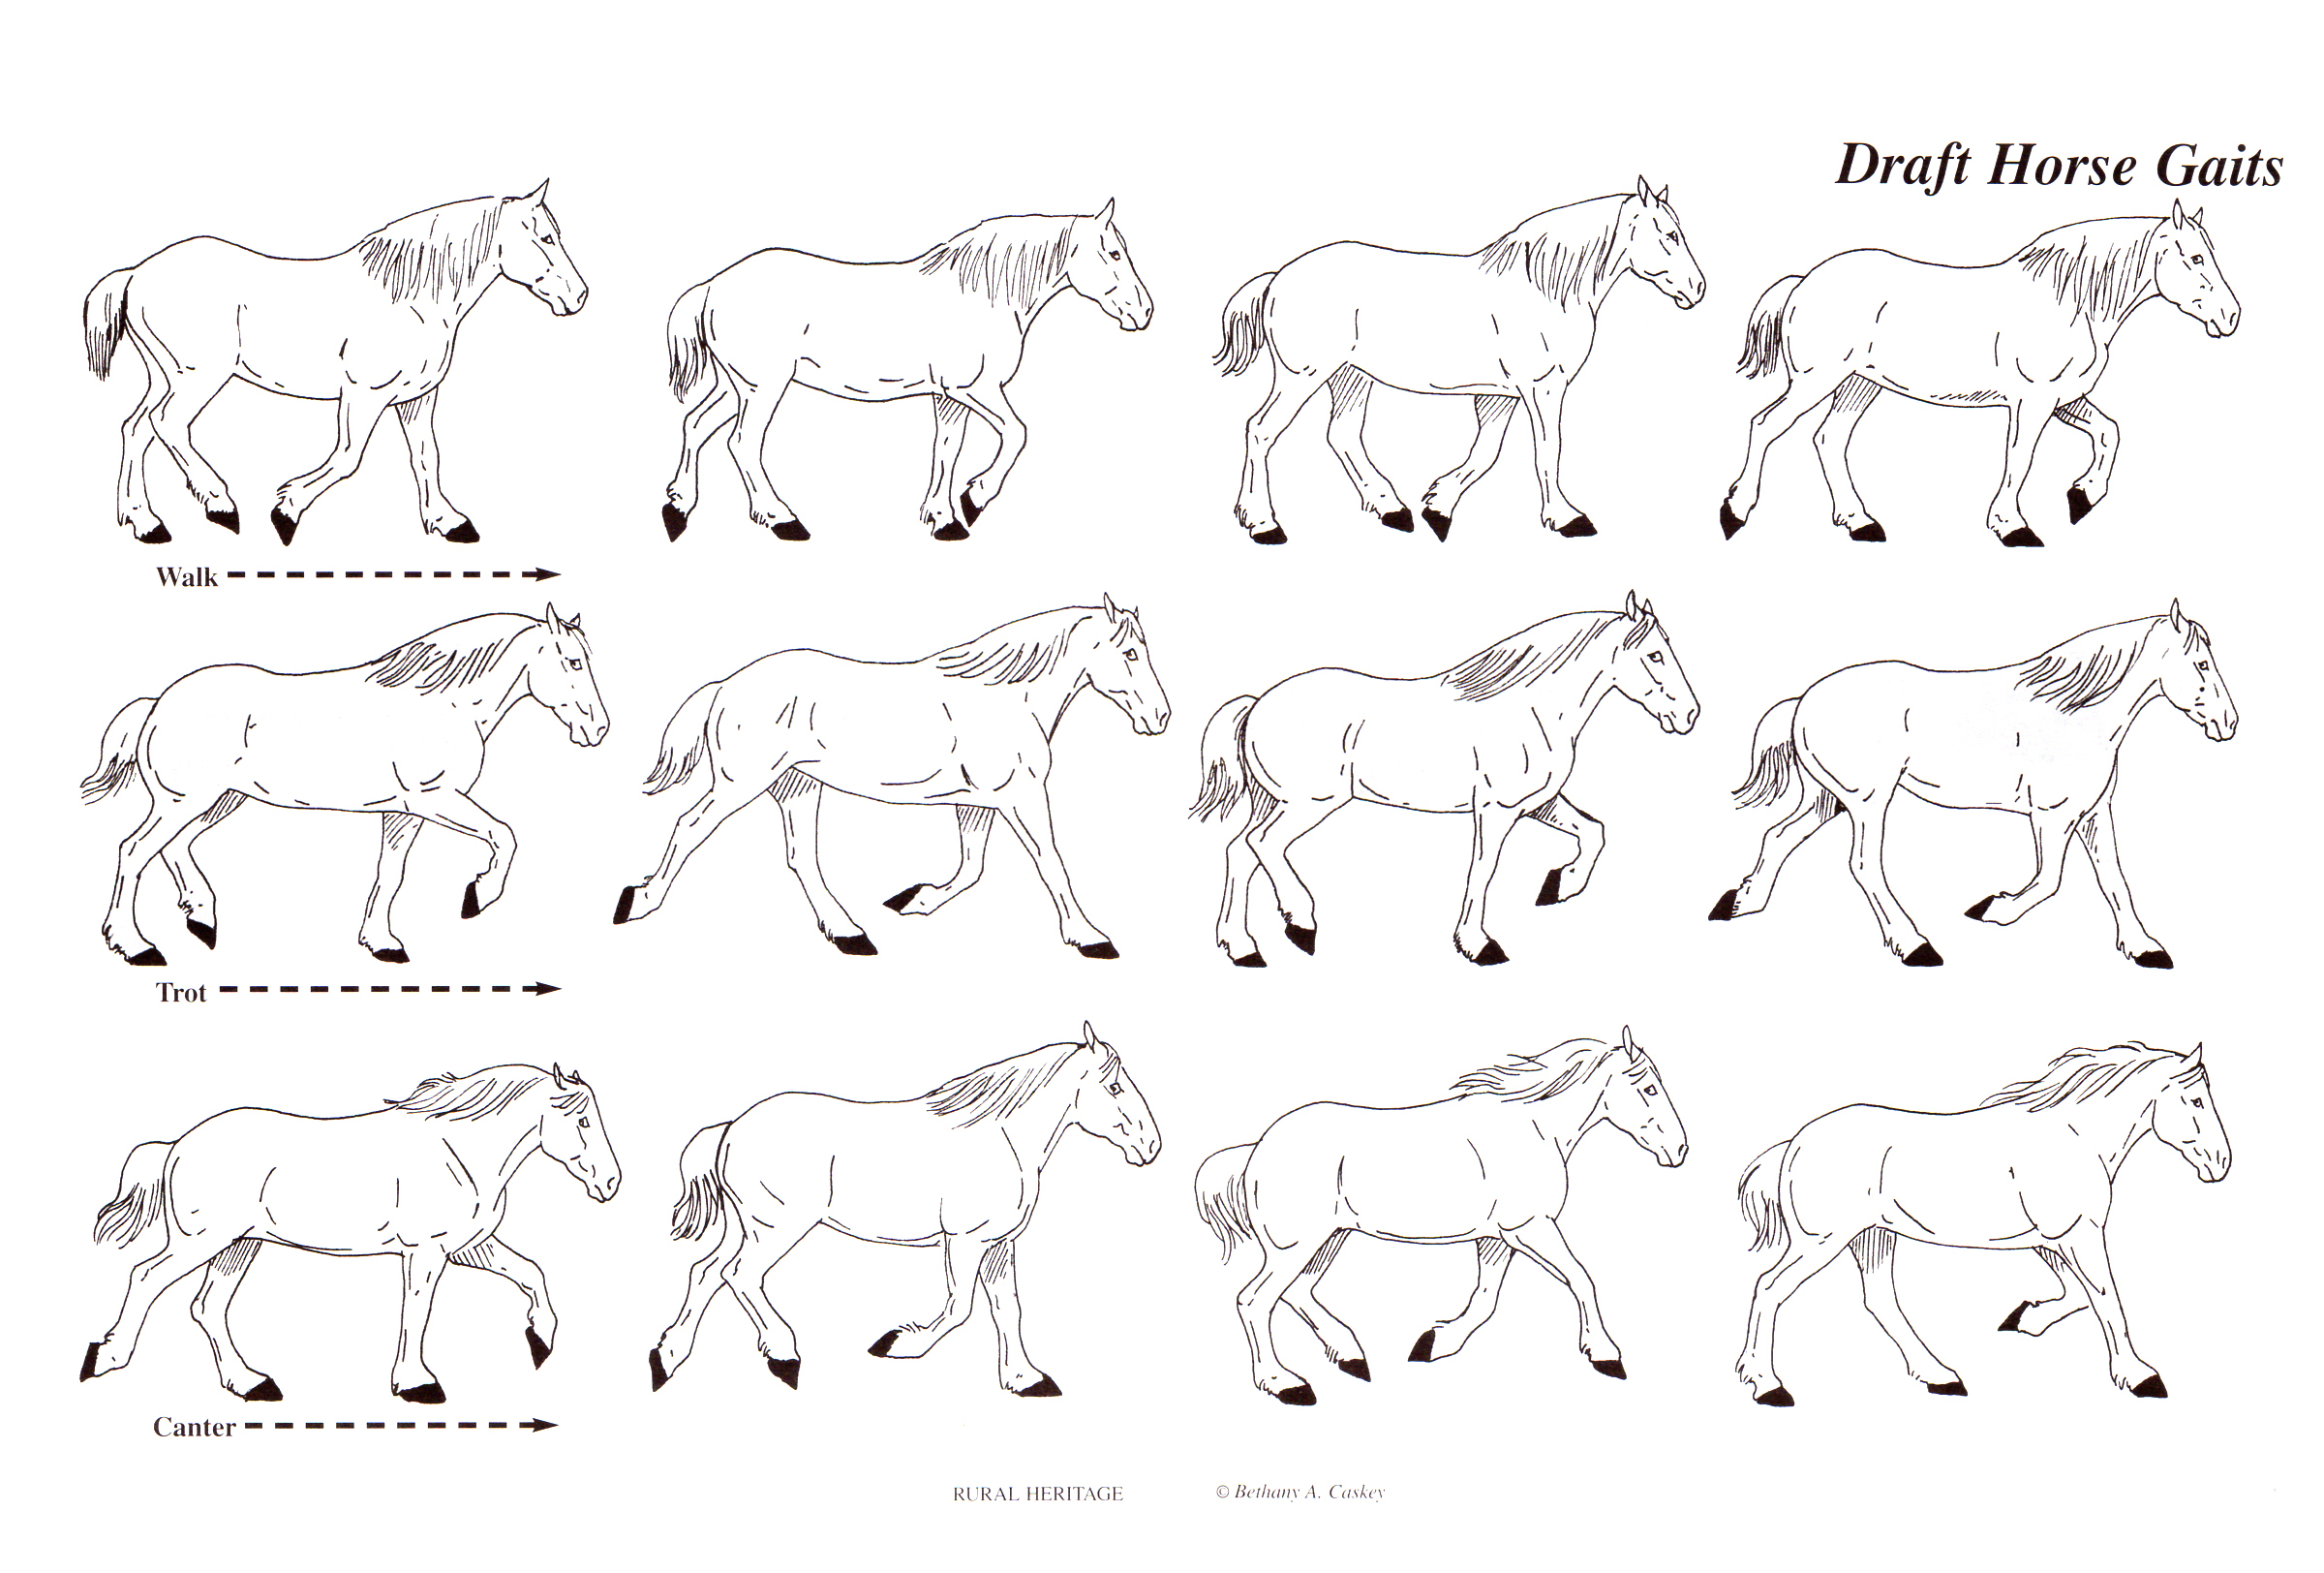 Rural Heritage Horse Gaits Illustration